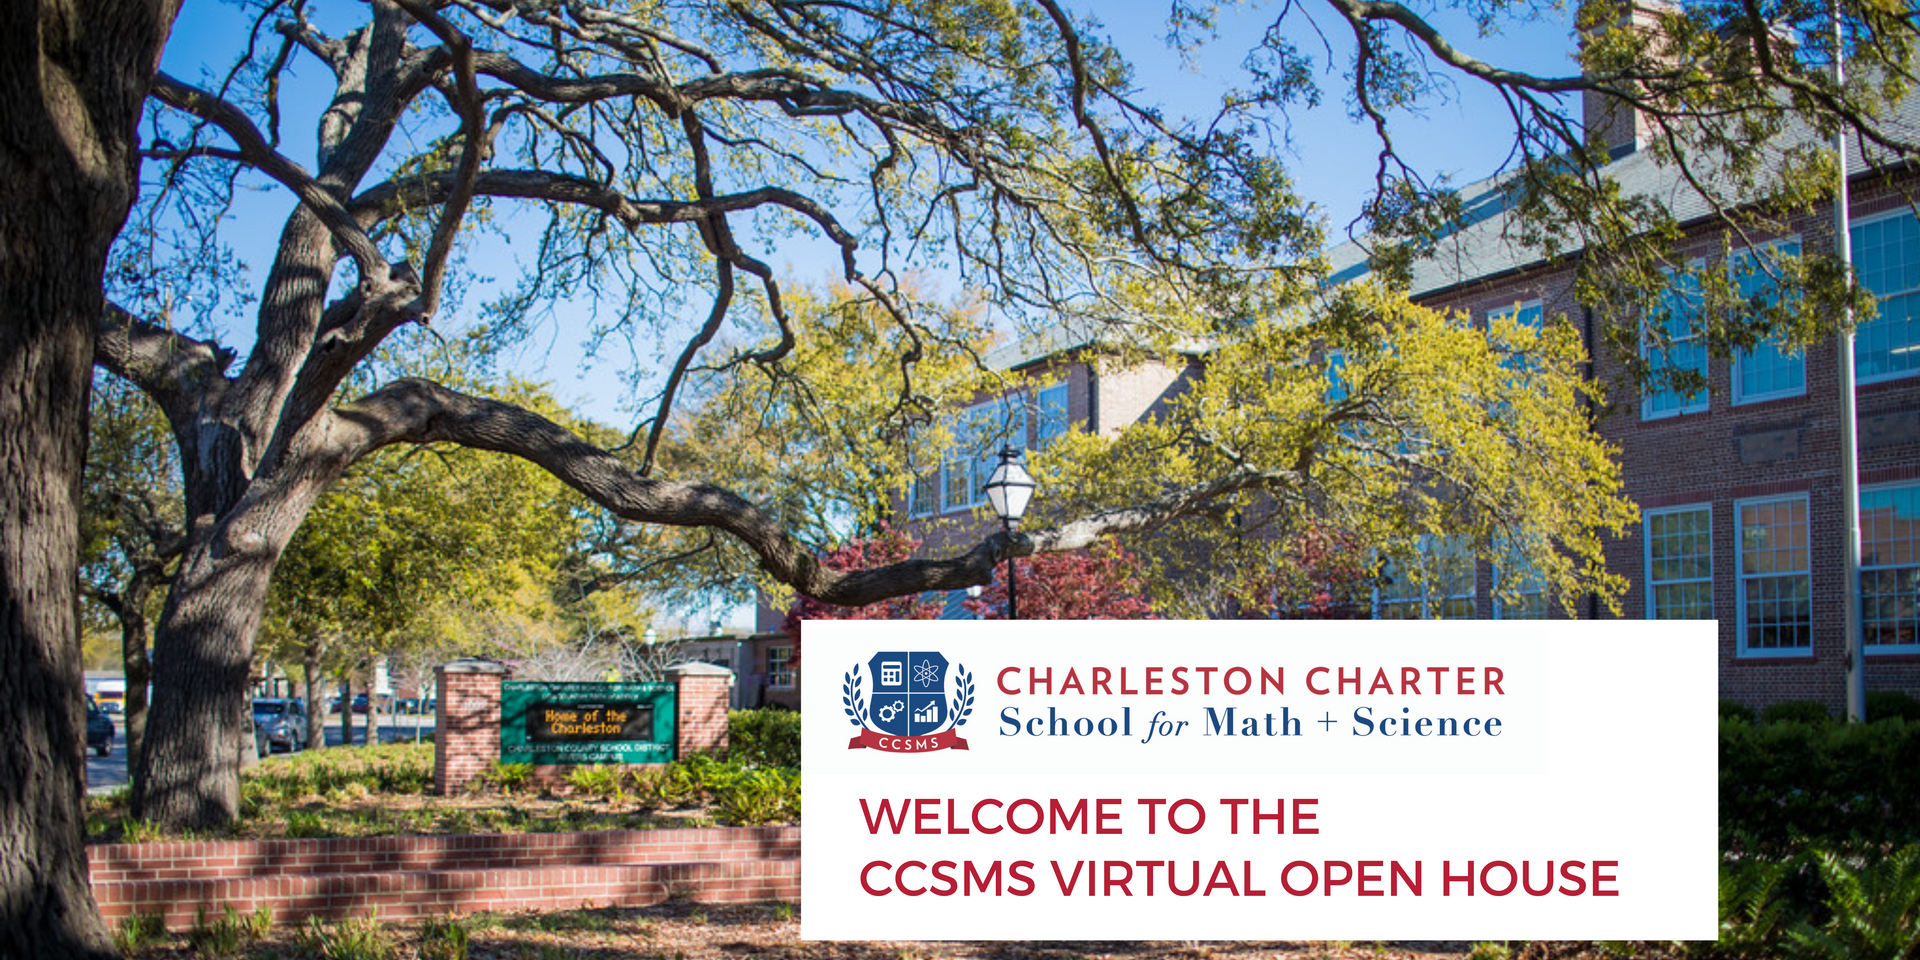 Welcome to the CCSMS Virtual Open House